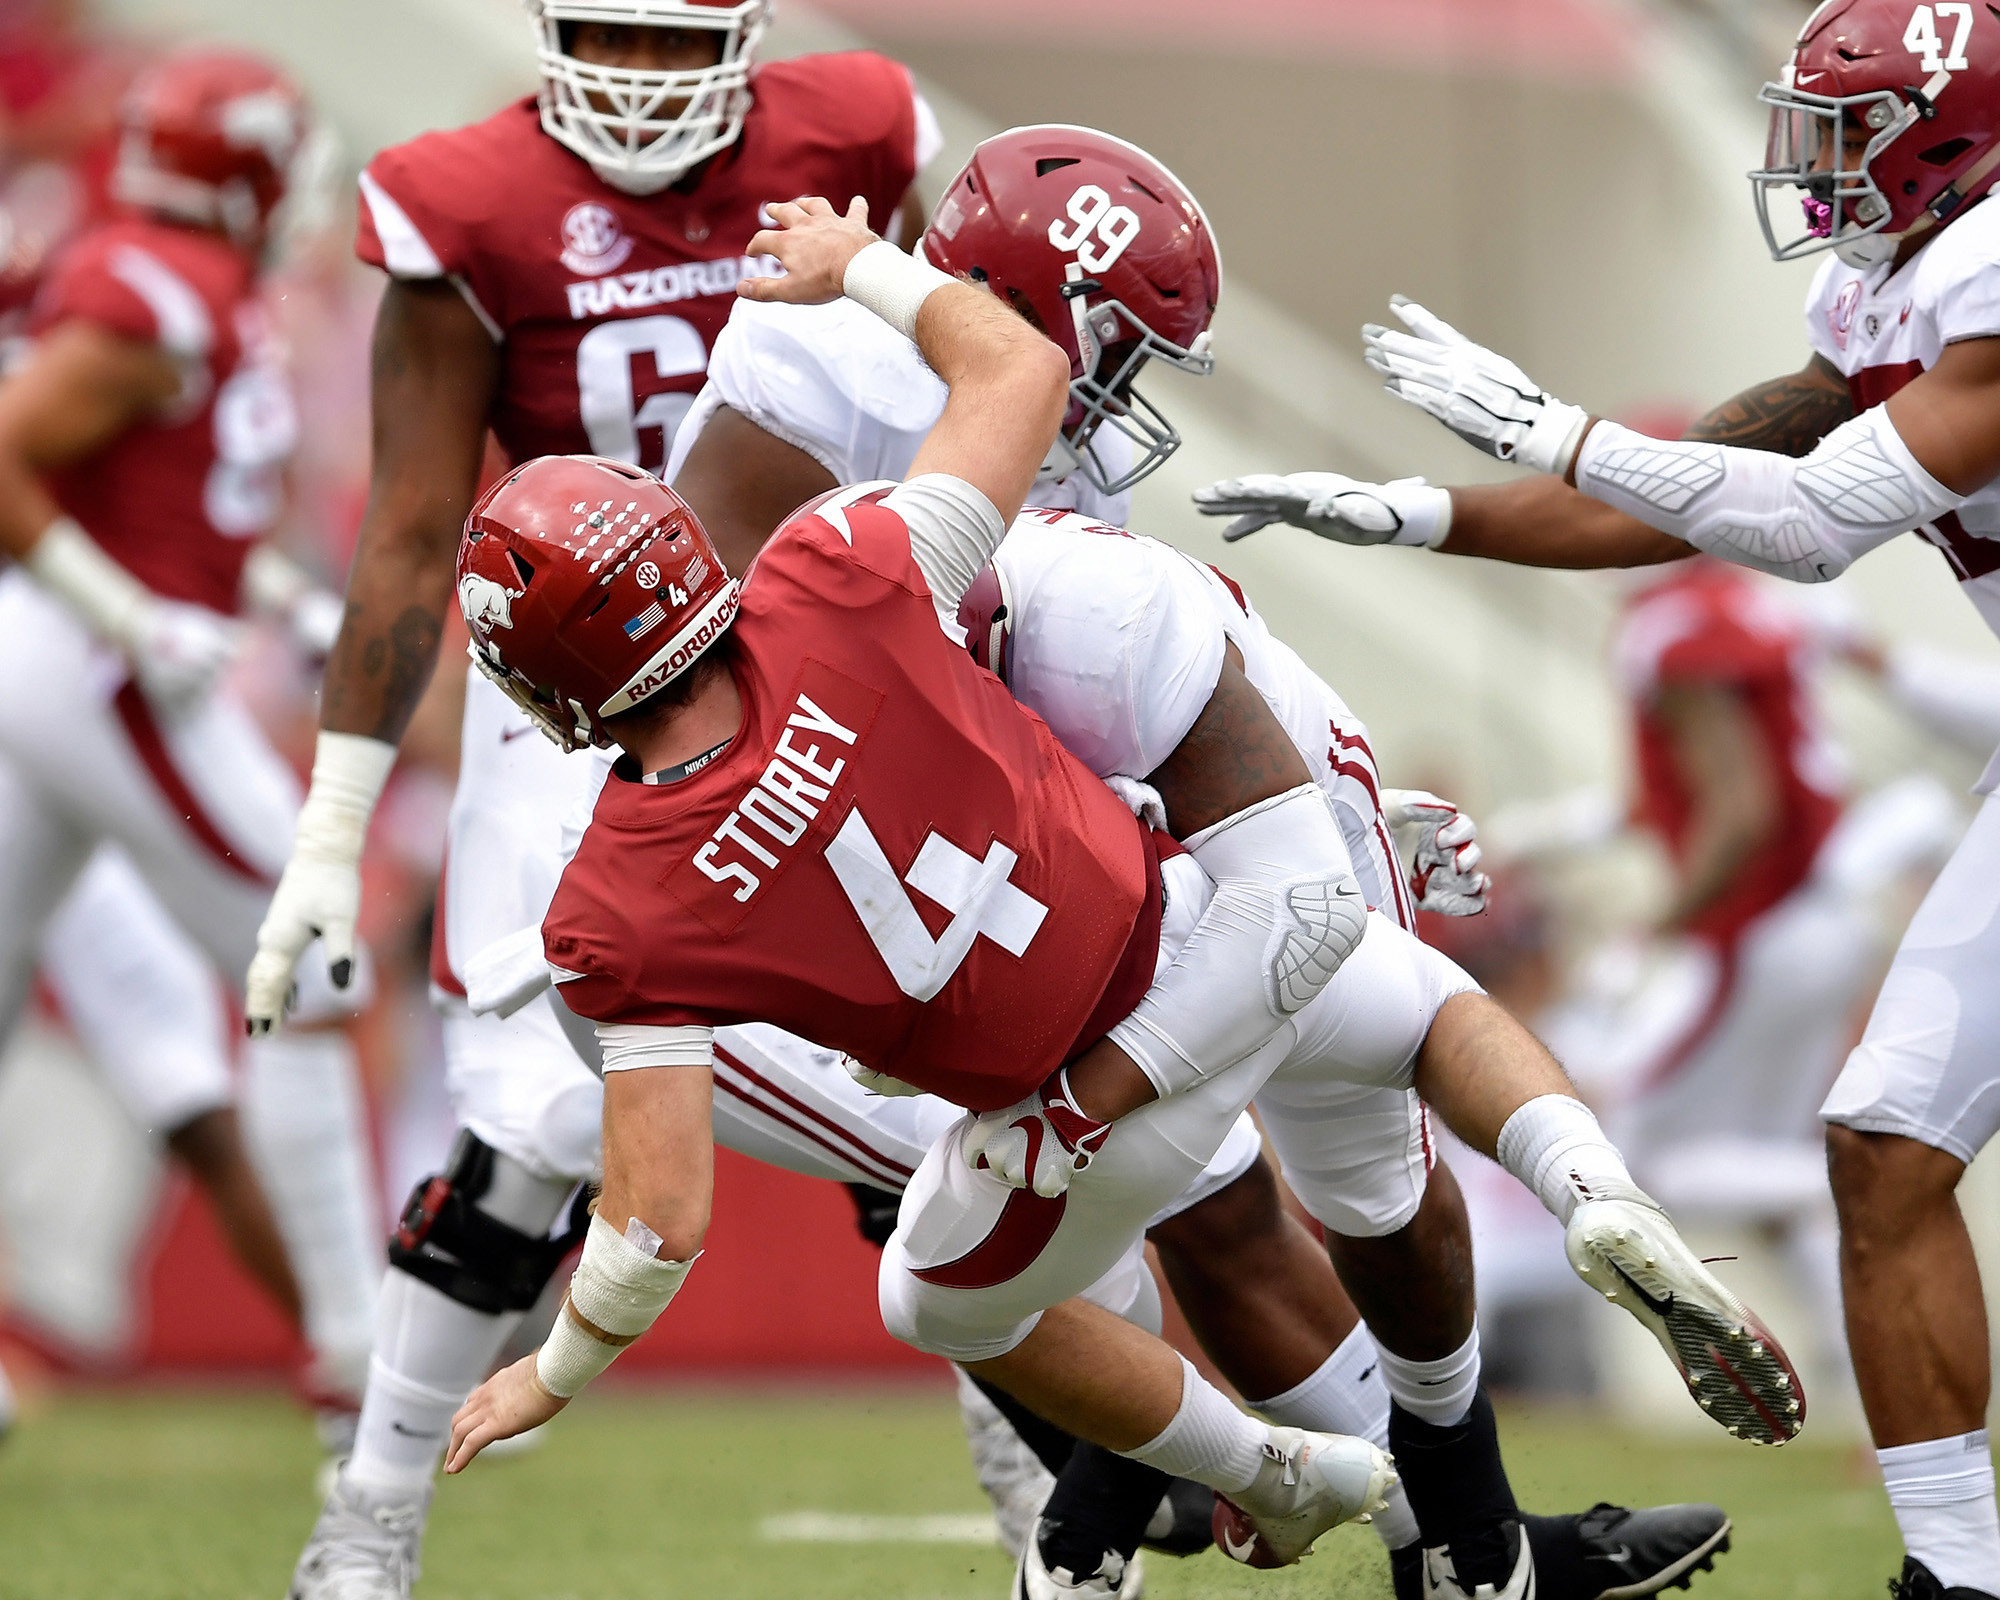 Arkansas Razorbacks quarterback Ty Storey (4) passes under pressure from Alabama Crimson Tide defensive linemen Raekwon Davis (99) and Quinnen Williams (92) in the first quarter of the NCAA football game at Razorback Stadium on Oct. 6, 2018, in Fayetteville, Ark. Alabama defeated Arkansas 65-31. (Photo by Lee Walls)